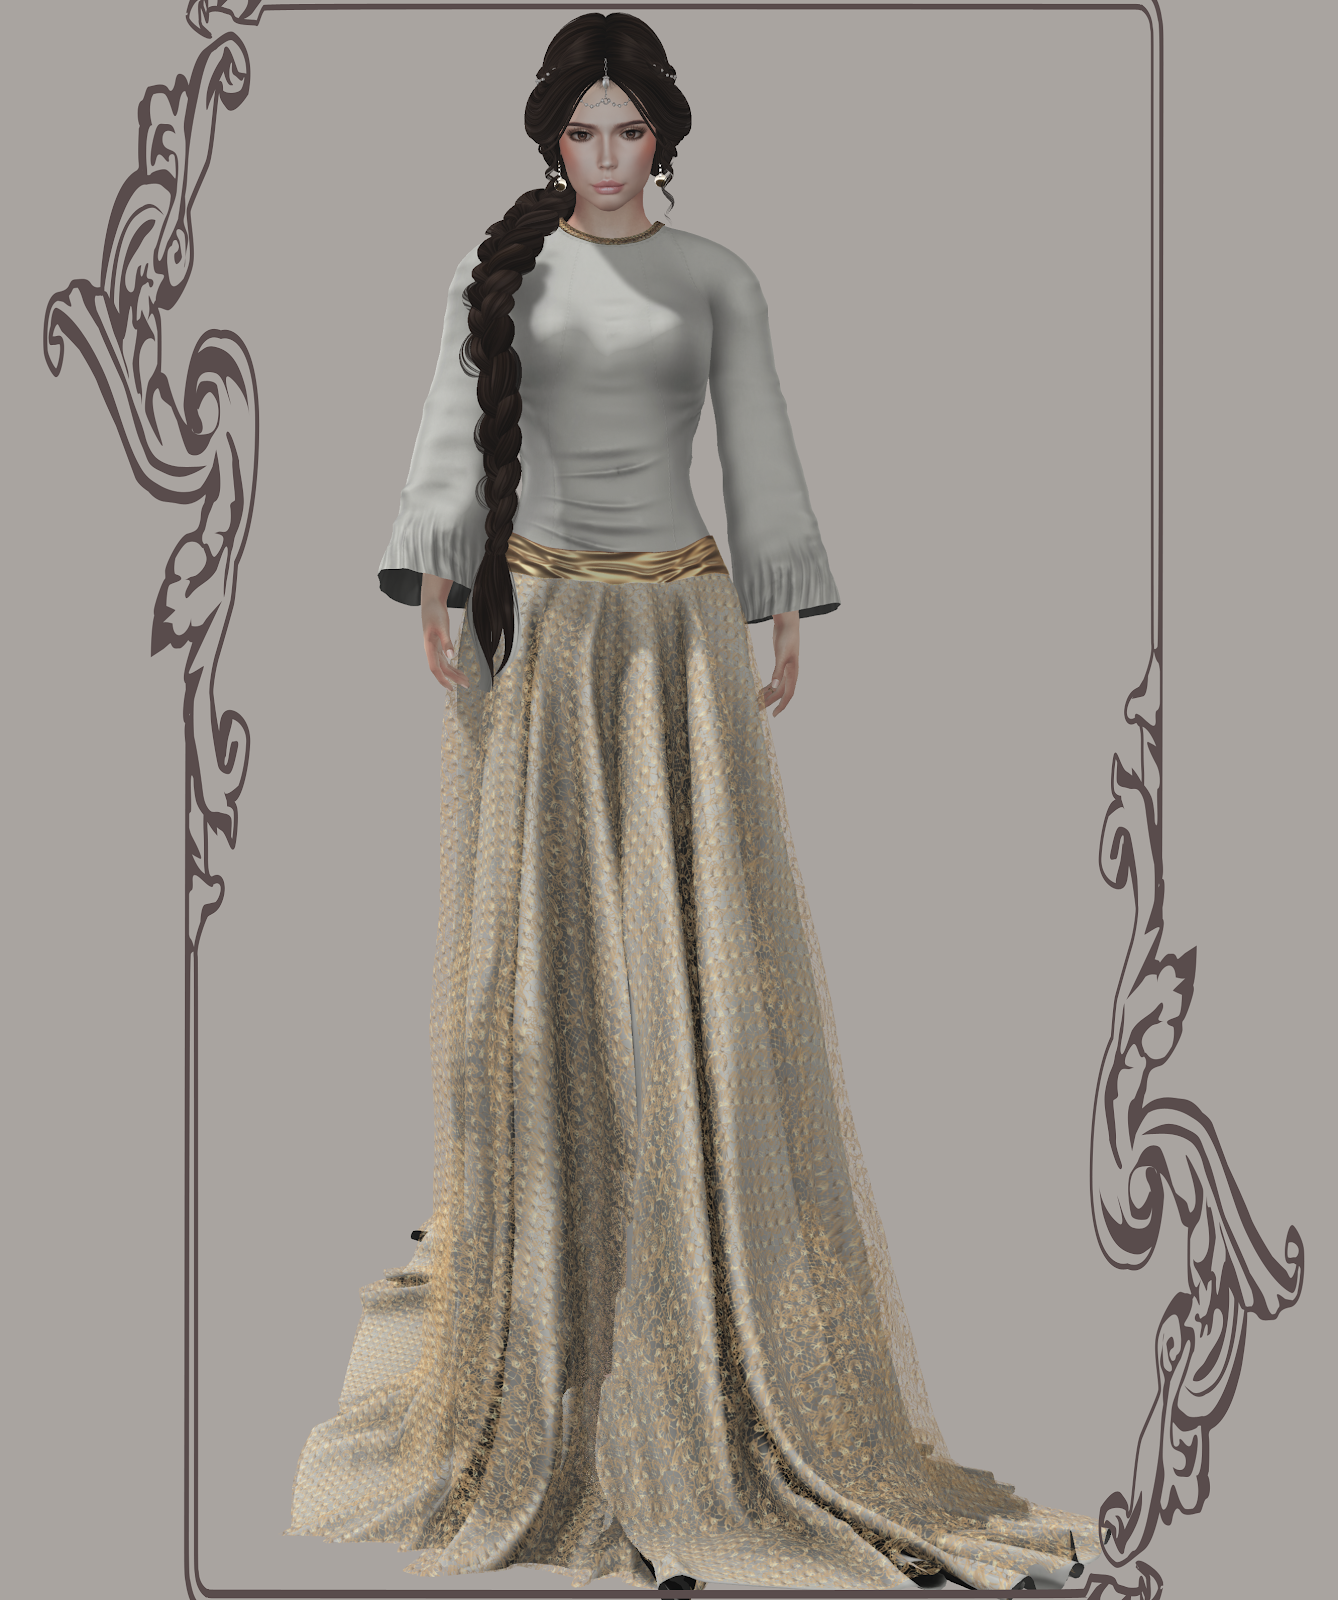 A Diary of My Second Life: A Themed Wedding For The Spring